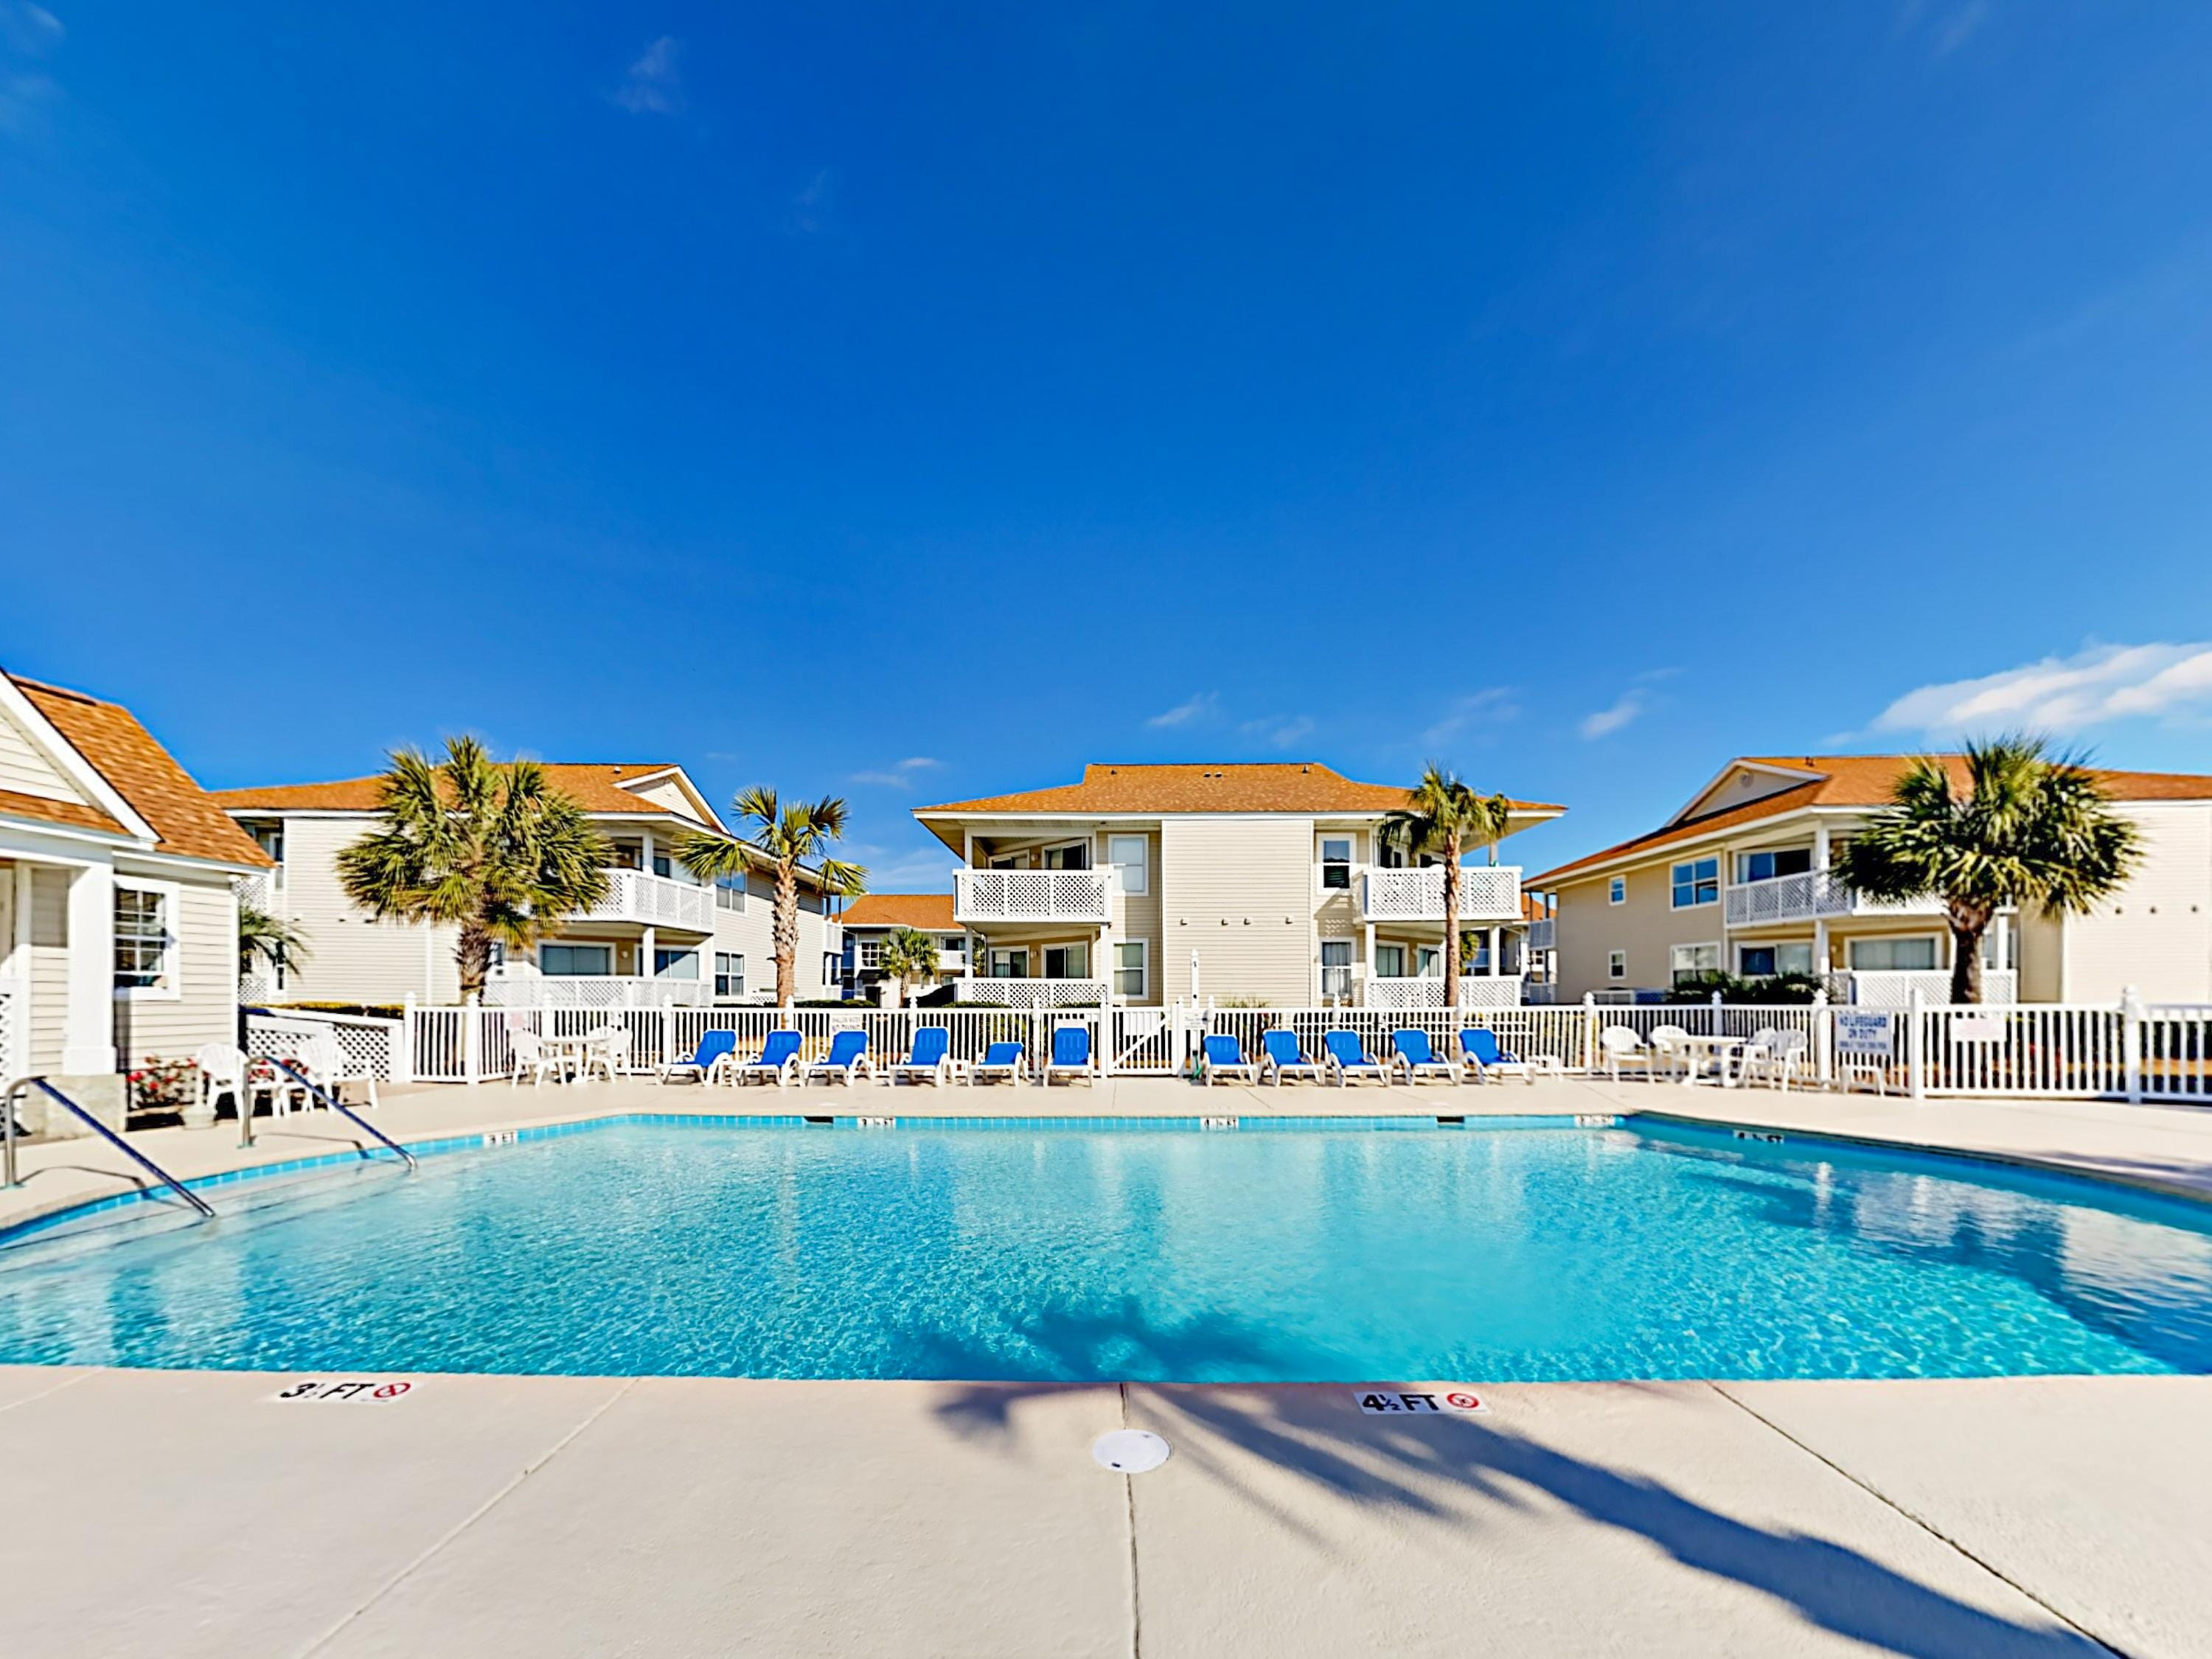 Guests have shared access to a huge on-site pool!